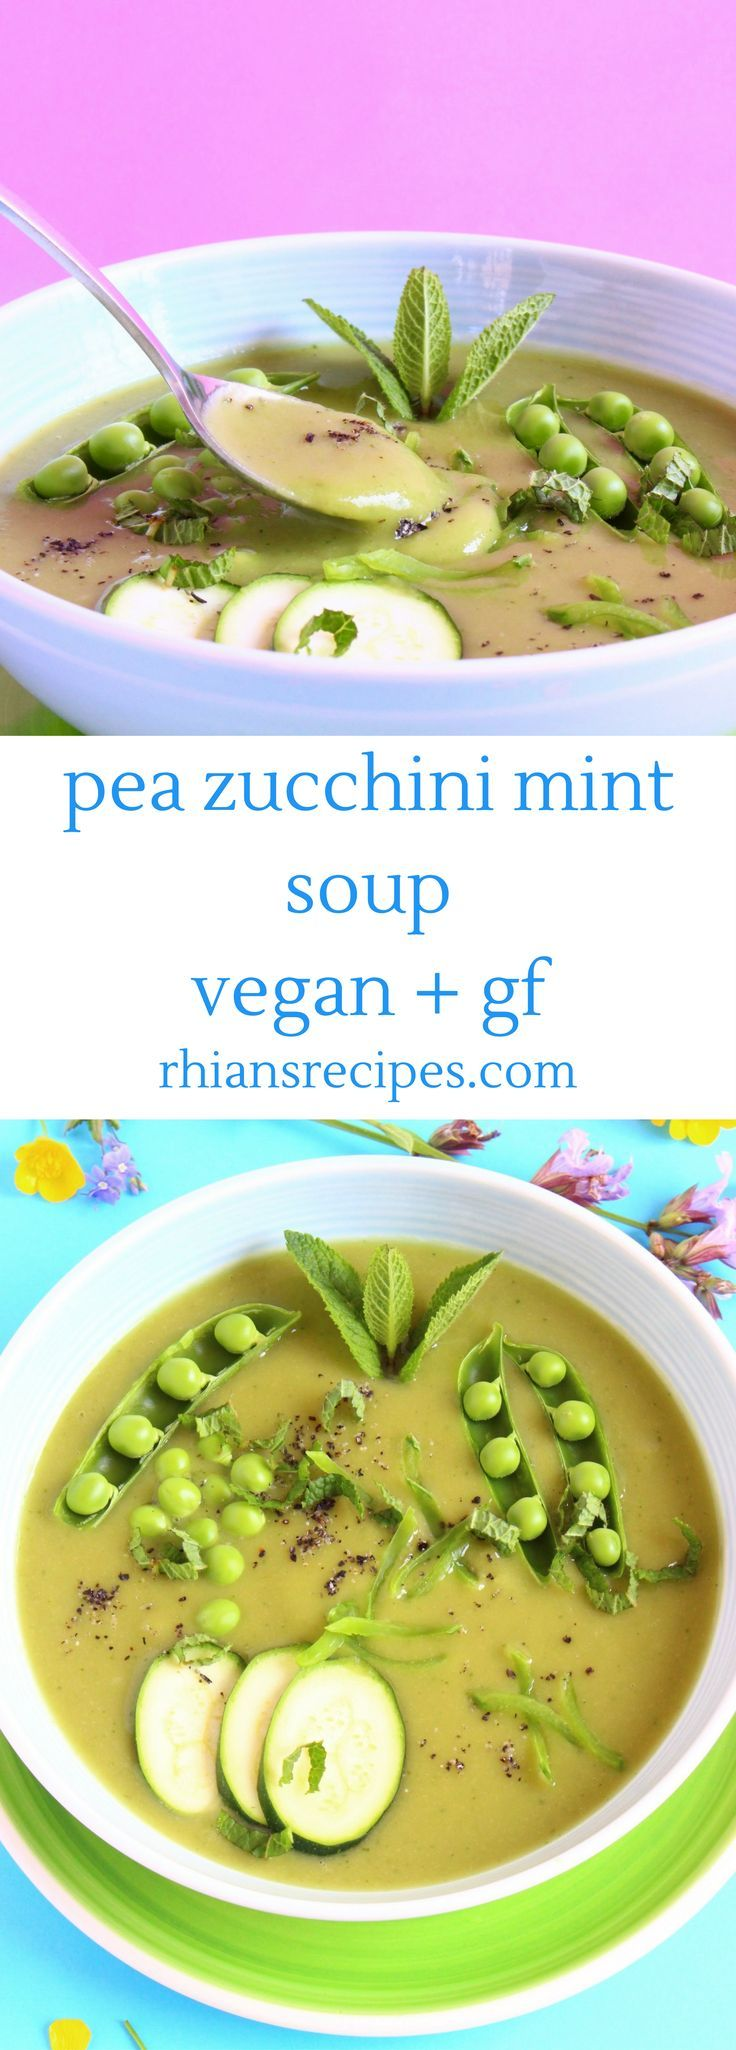 This Pea Zucchini Mint Soup is super nutritious and the perfect way to use all the wonderful summer produce! Vegan and gluten-free.